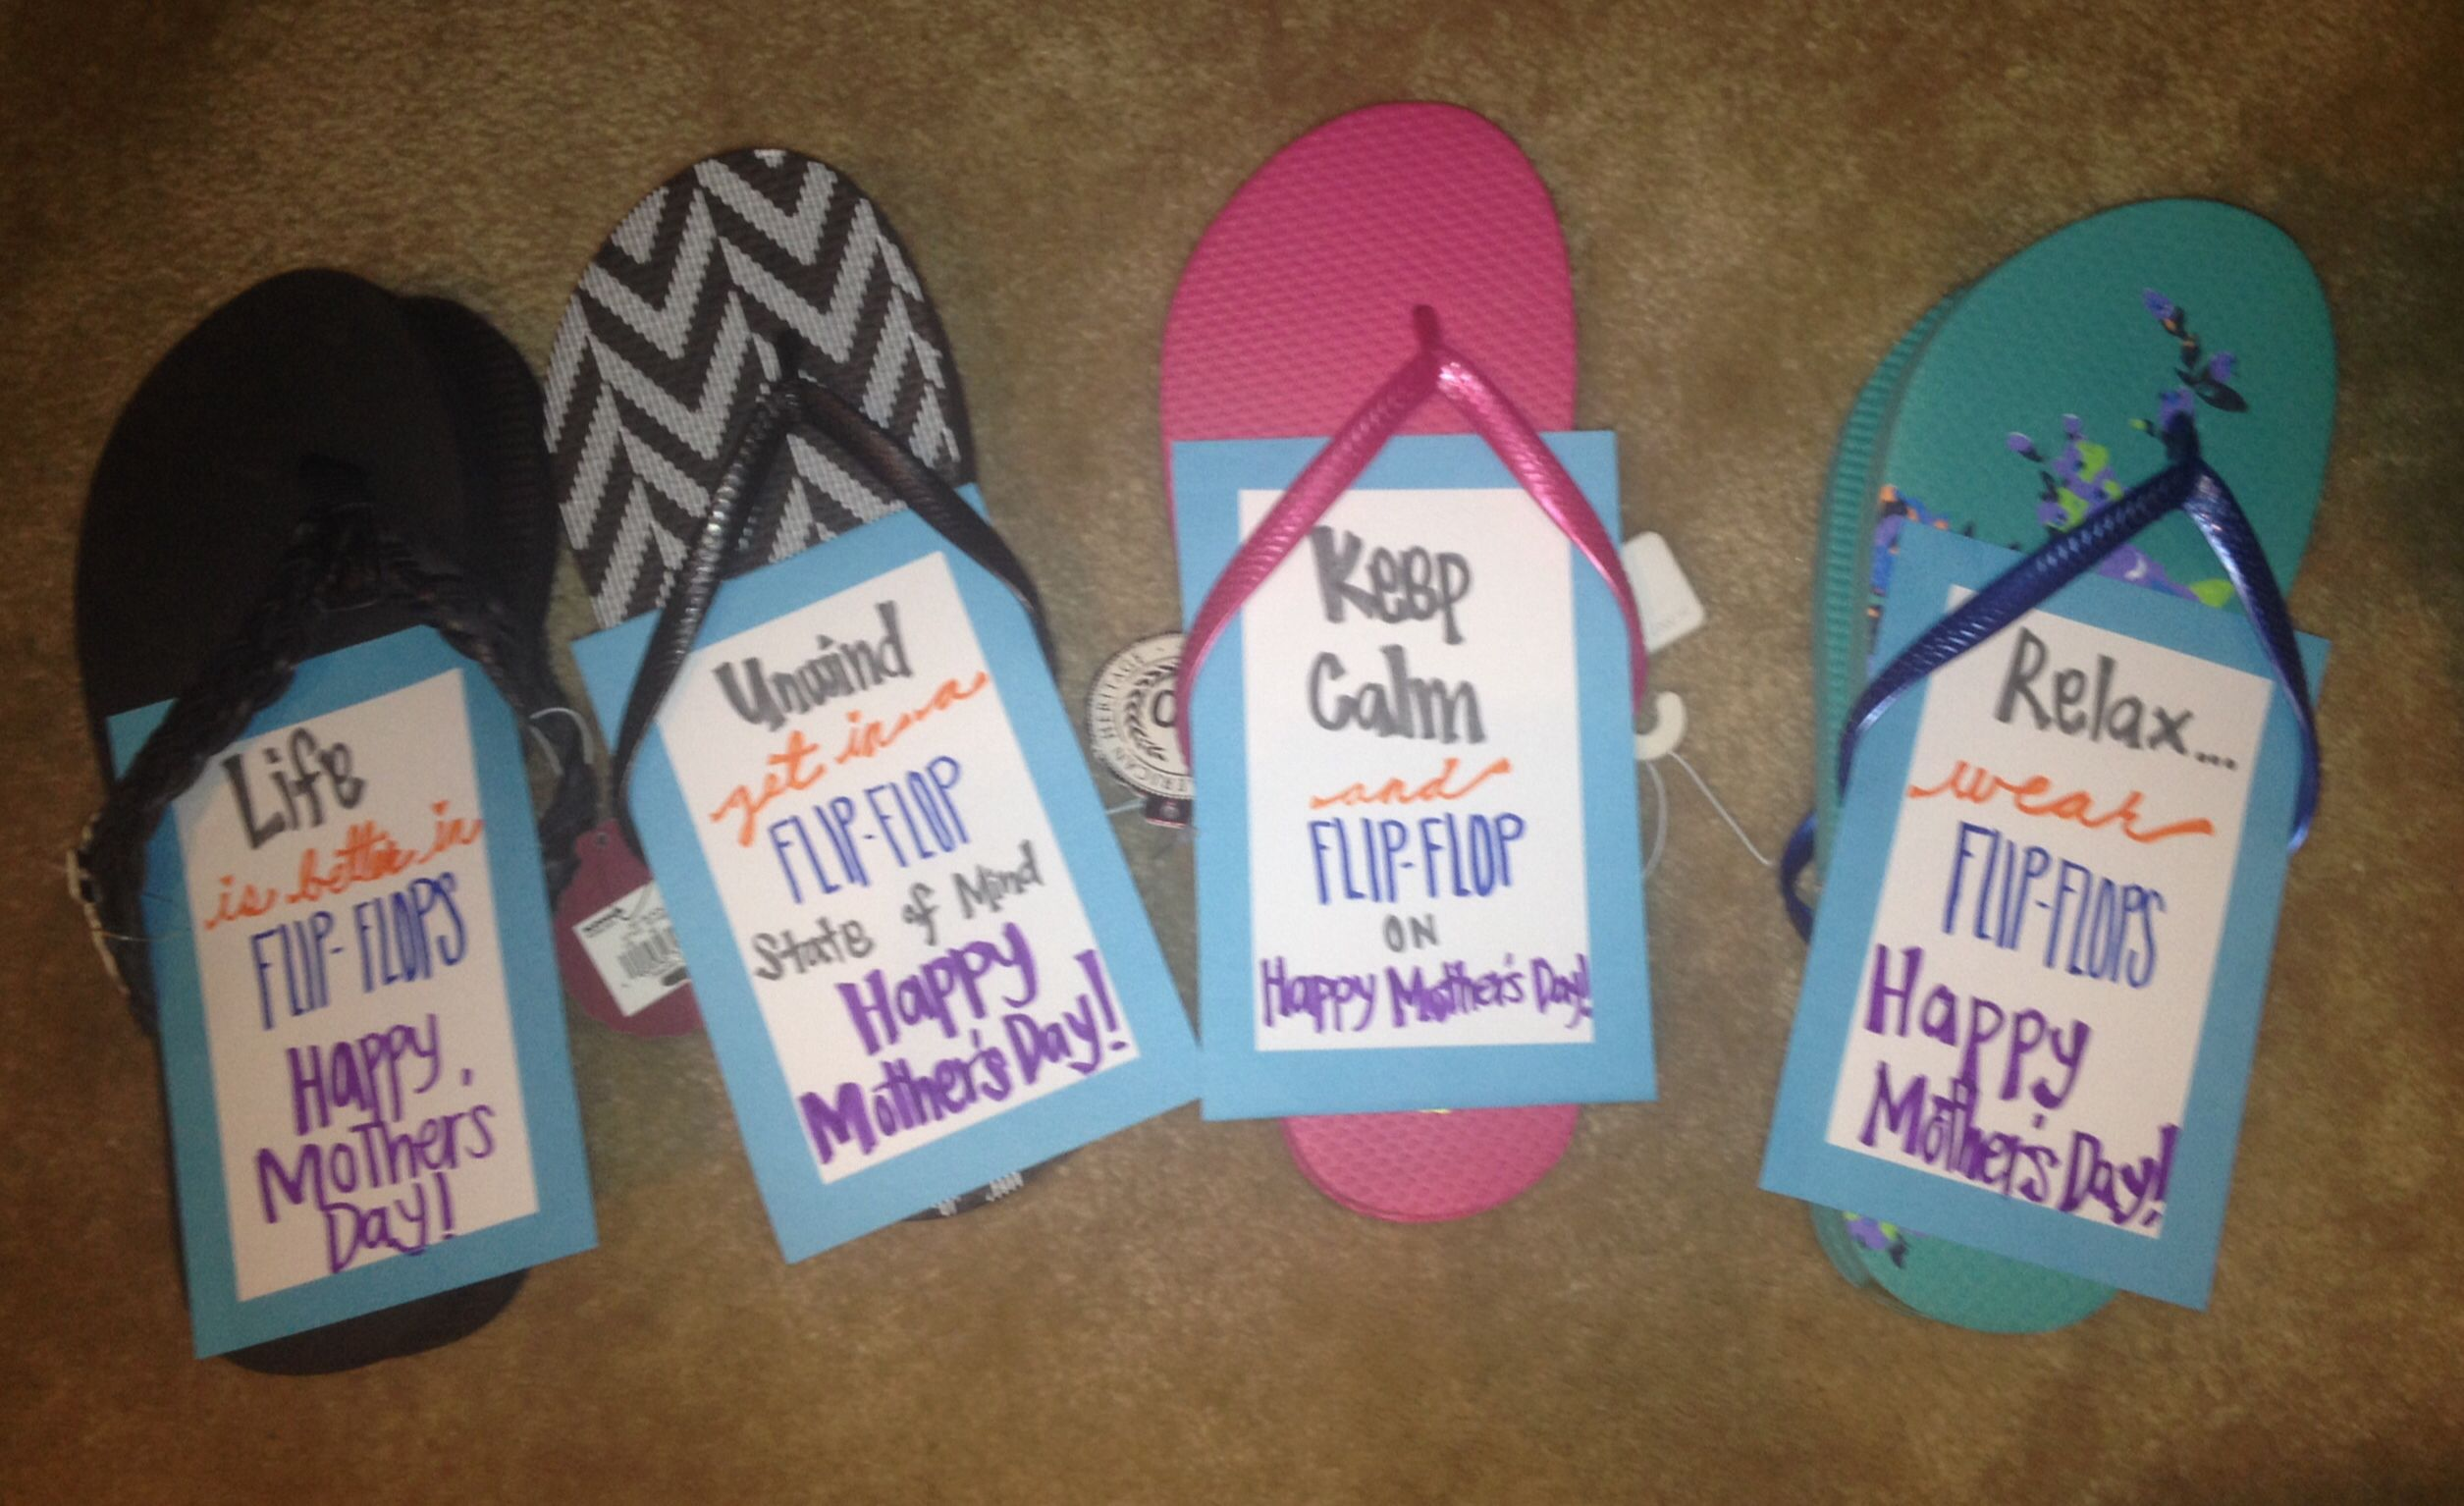 Flipflops gifts for my sisters for mothers day was